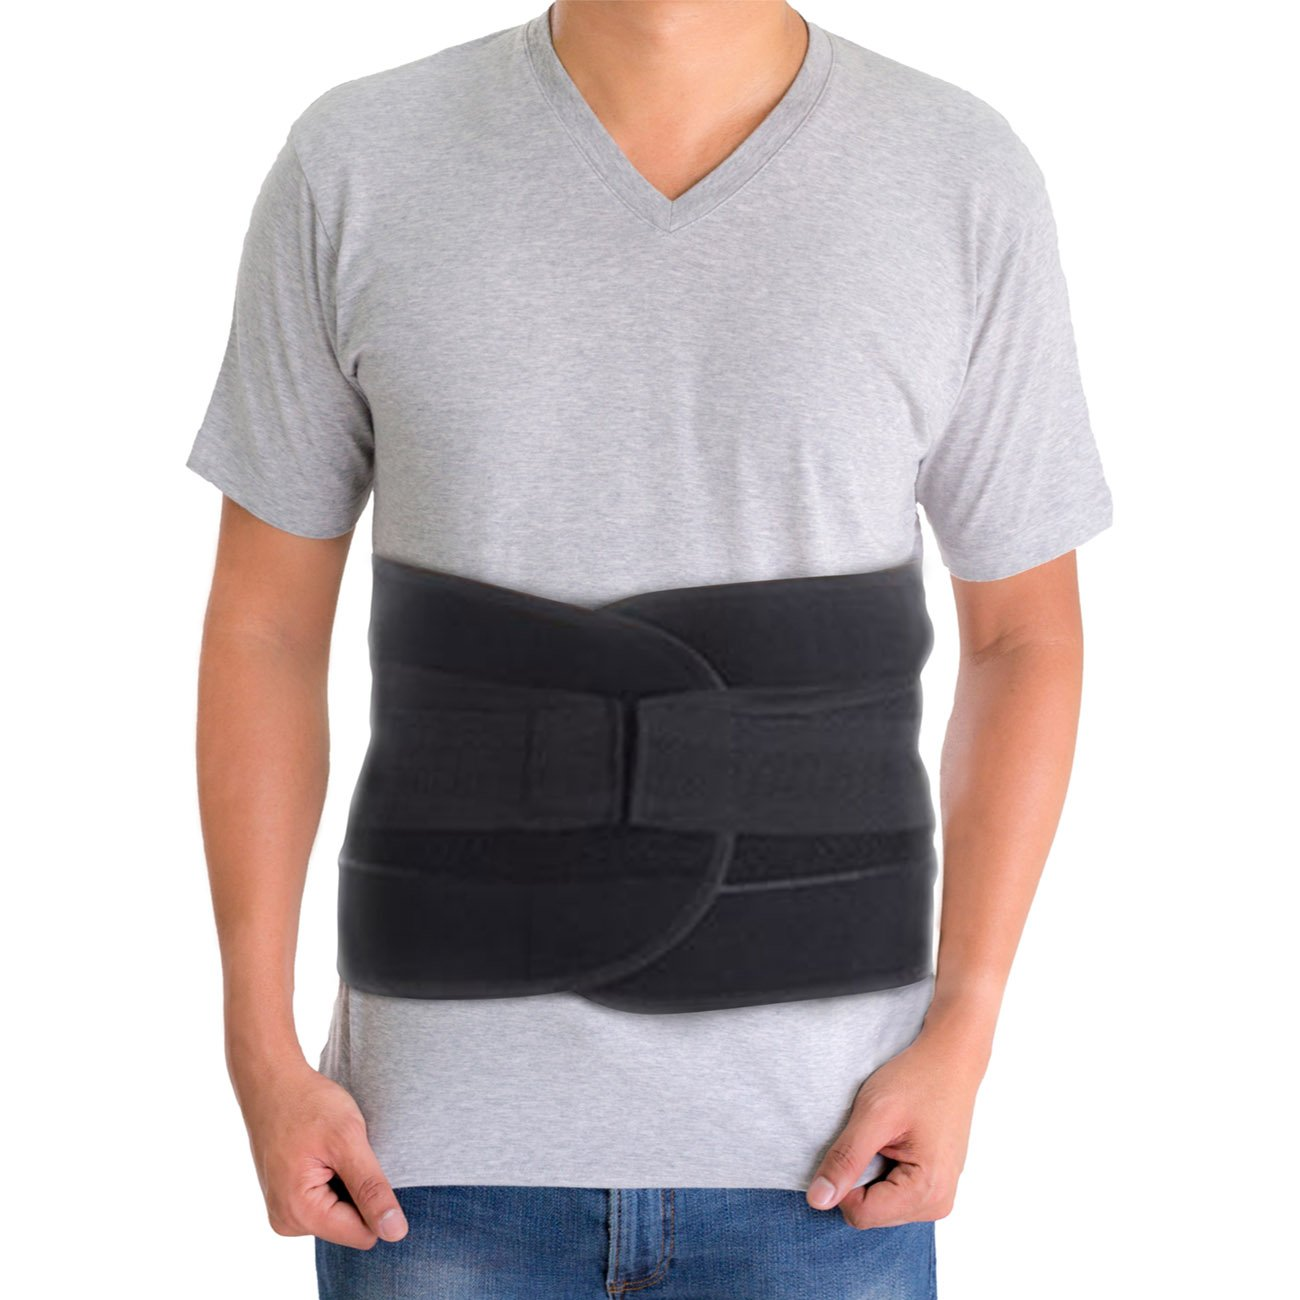 Back Brace for Lower Back Pain – Comfortable Lumbar Support Belt for Weight Lifting and Low Spine Stabilizer for Sciatica Nerve Relief or Scoliosis. Compression for Bulging Herniated Disc (Medium) by ARMSTRONG AMERIKA (Image #8)